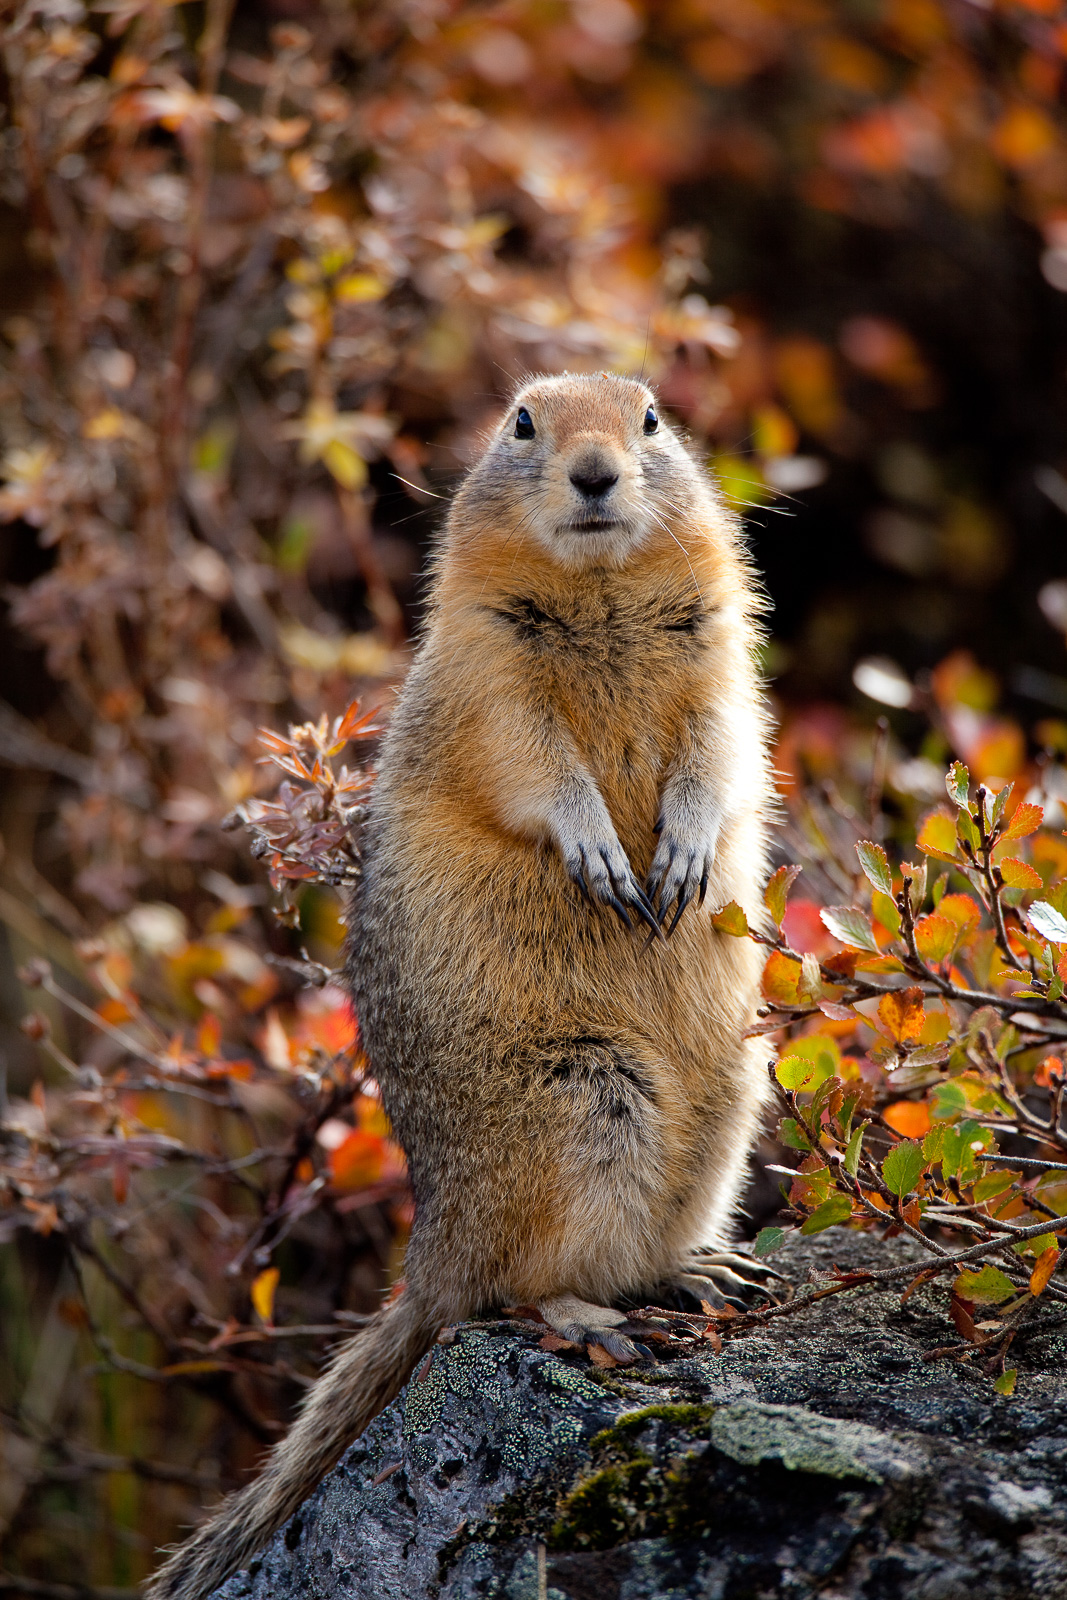 Artic Squirrel,Artic Squirrel,Fall, Wildlife,Denali National Park, Alaska, photo